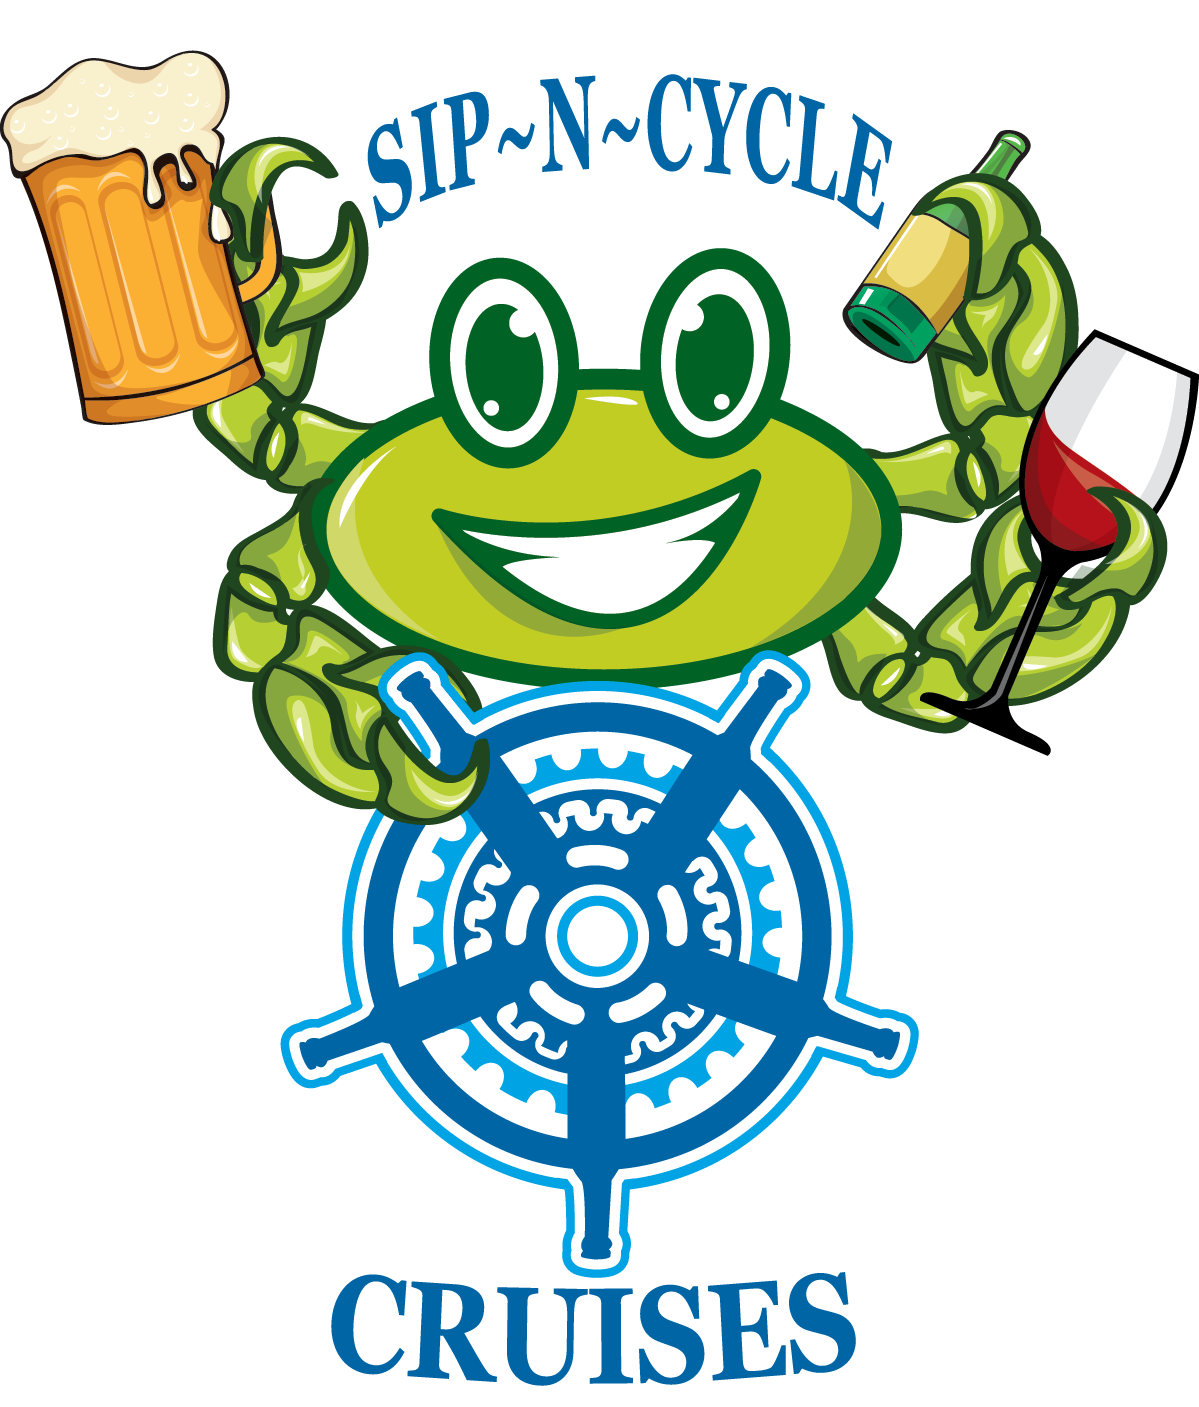 Sip-N-Cycle Cruises